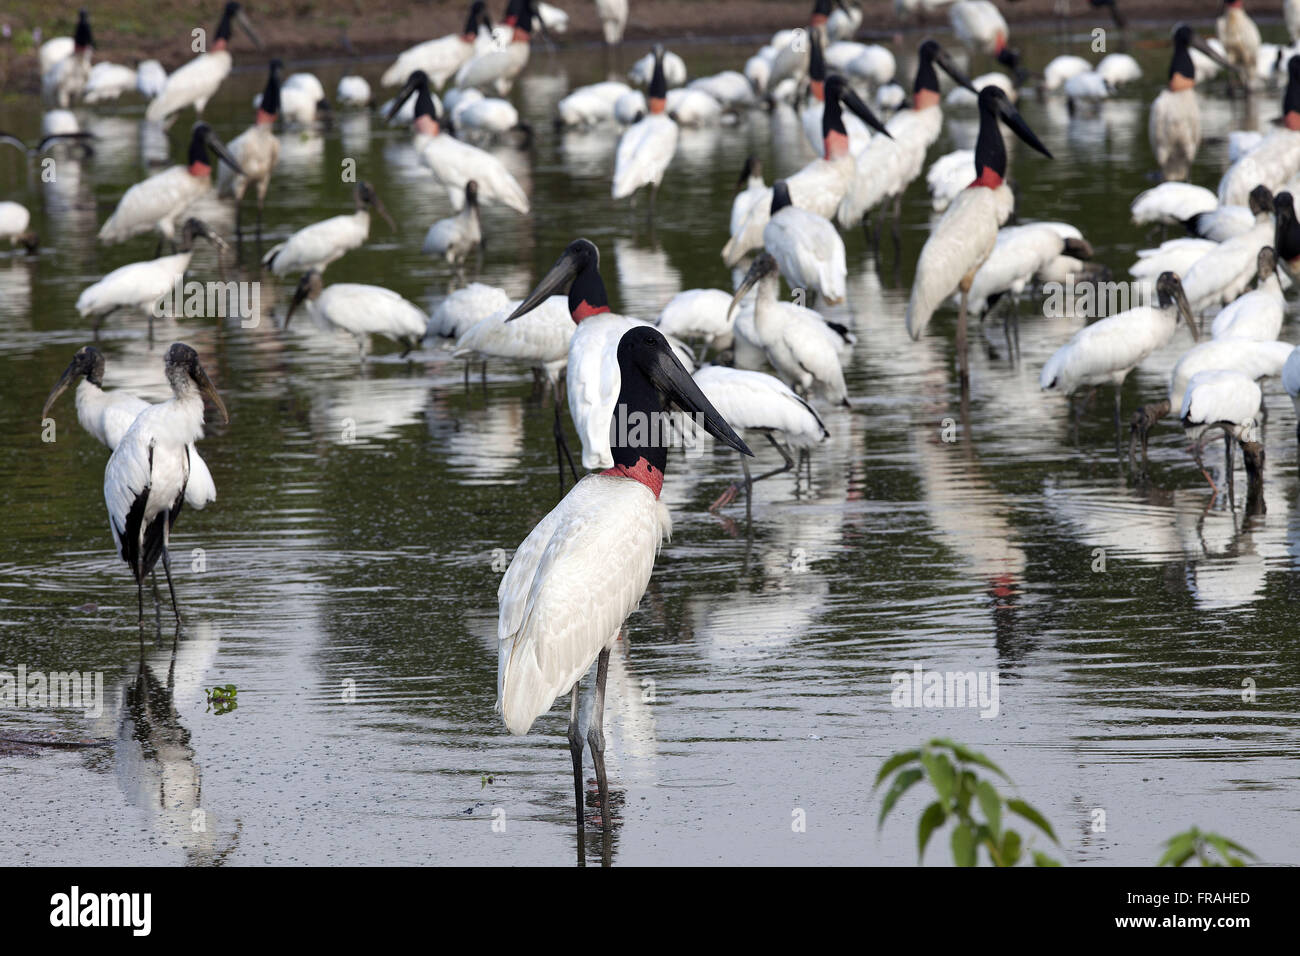 Concentration of birds or ada head-quark and drought in wetland Pocone - Stock Image